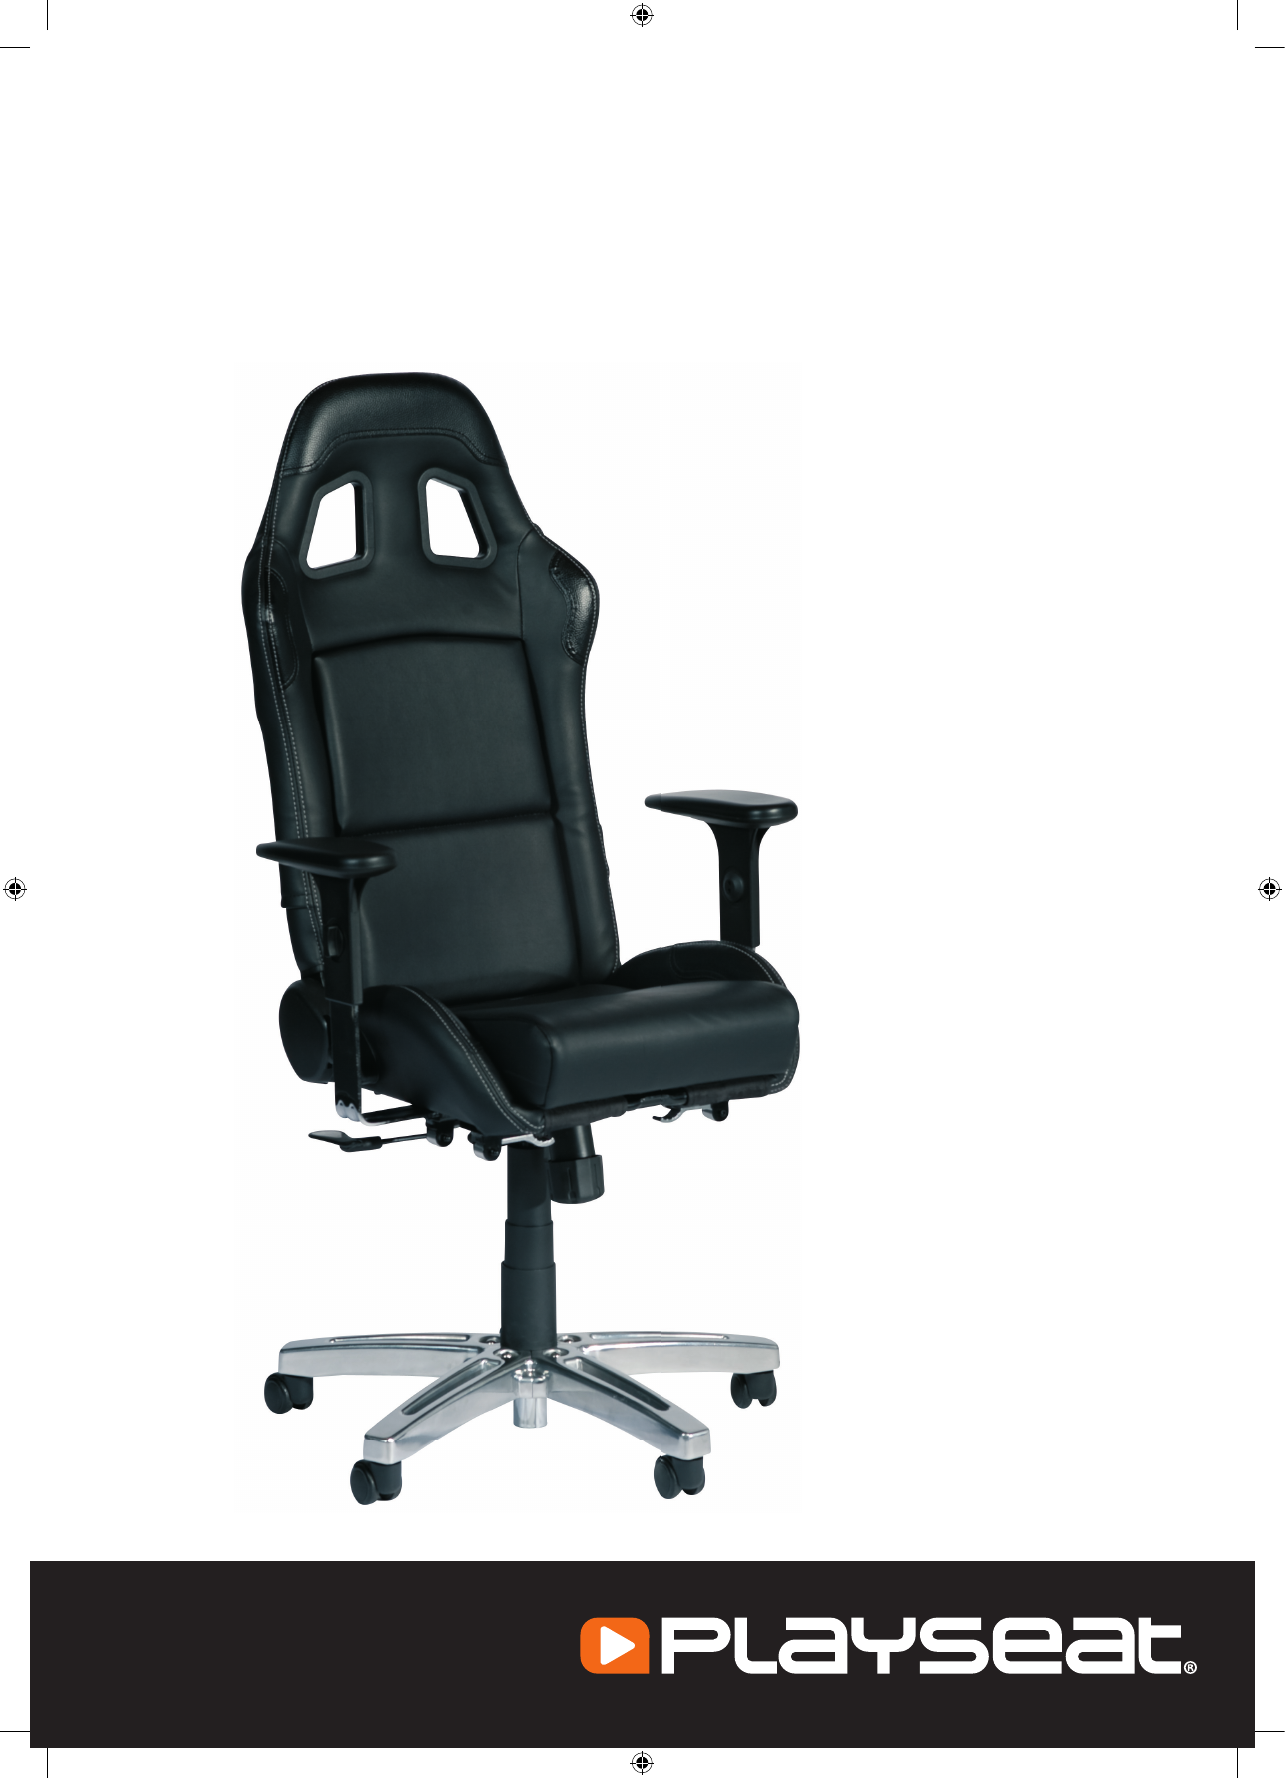 Playseat Office Chair Manual